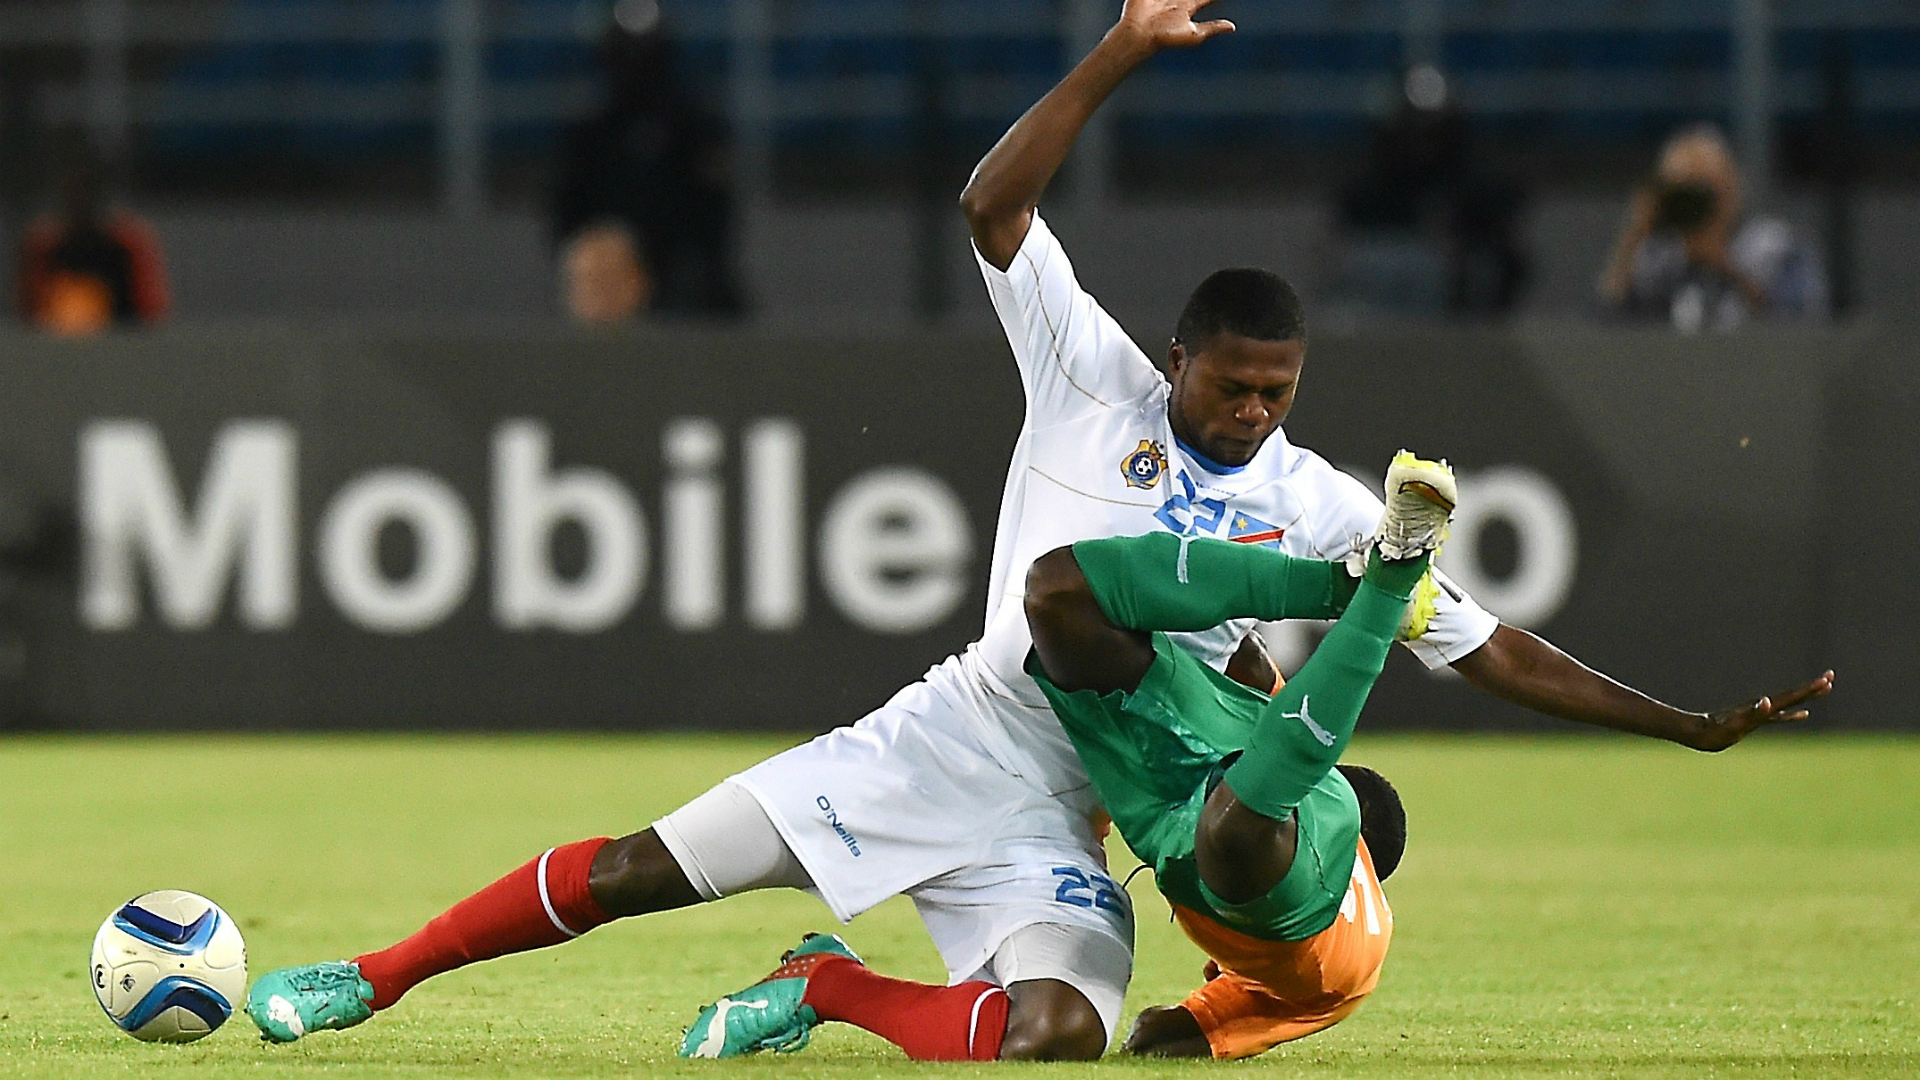 Newcastle's Mbemba injured on worldwide duty with DR Congo